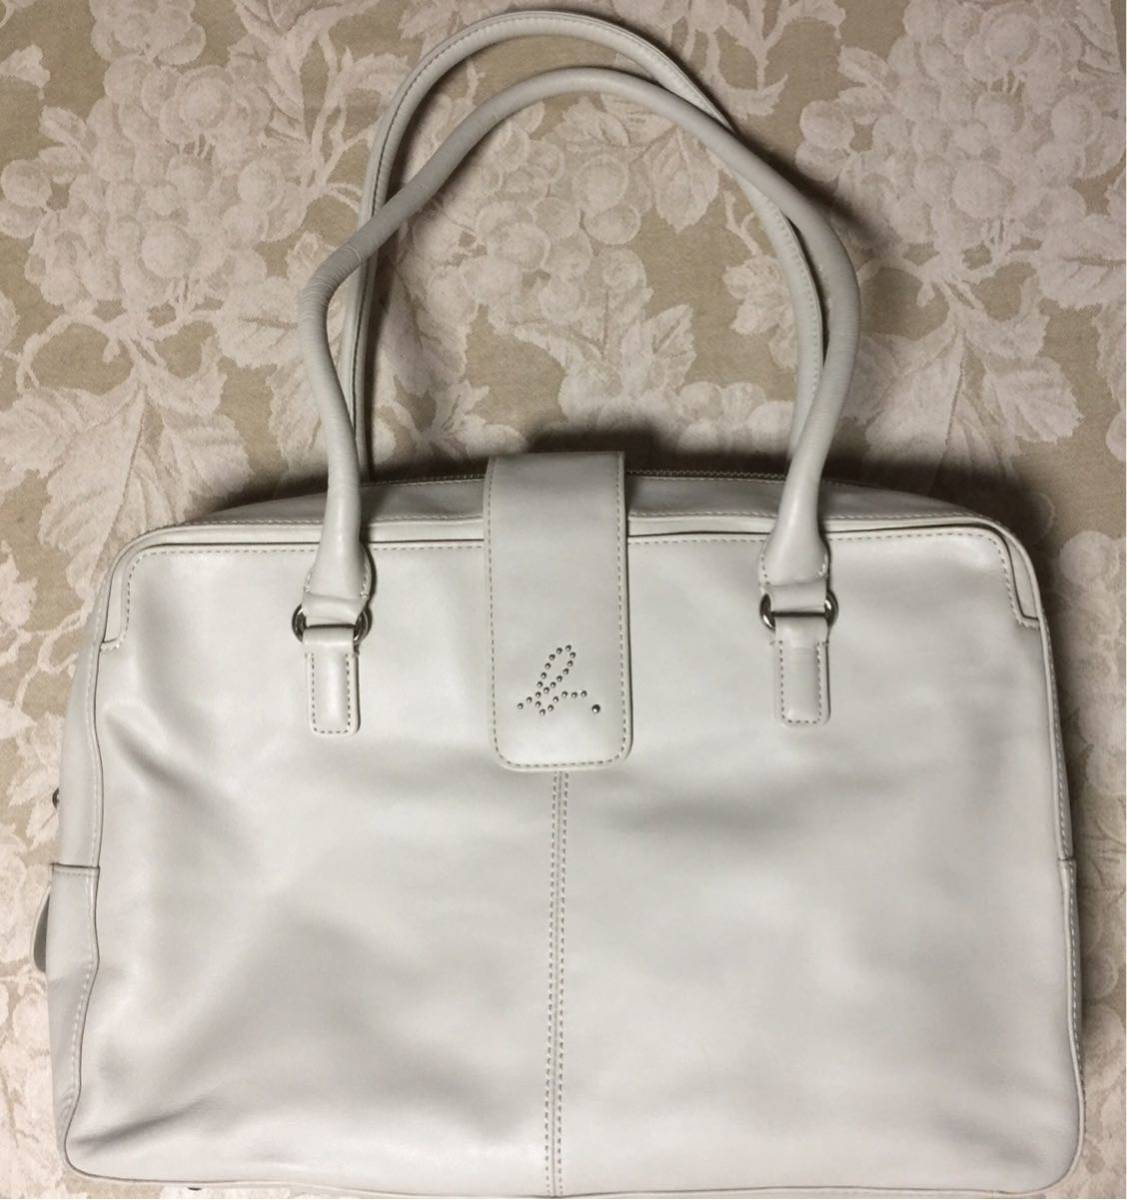 Agnes b handbag leather